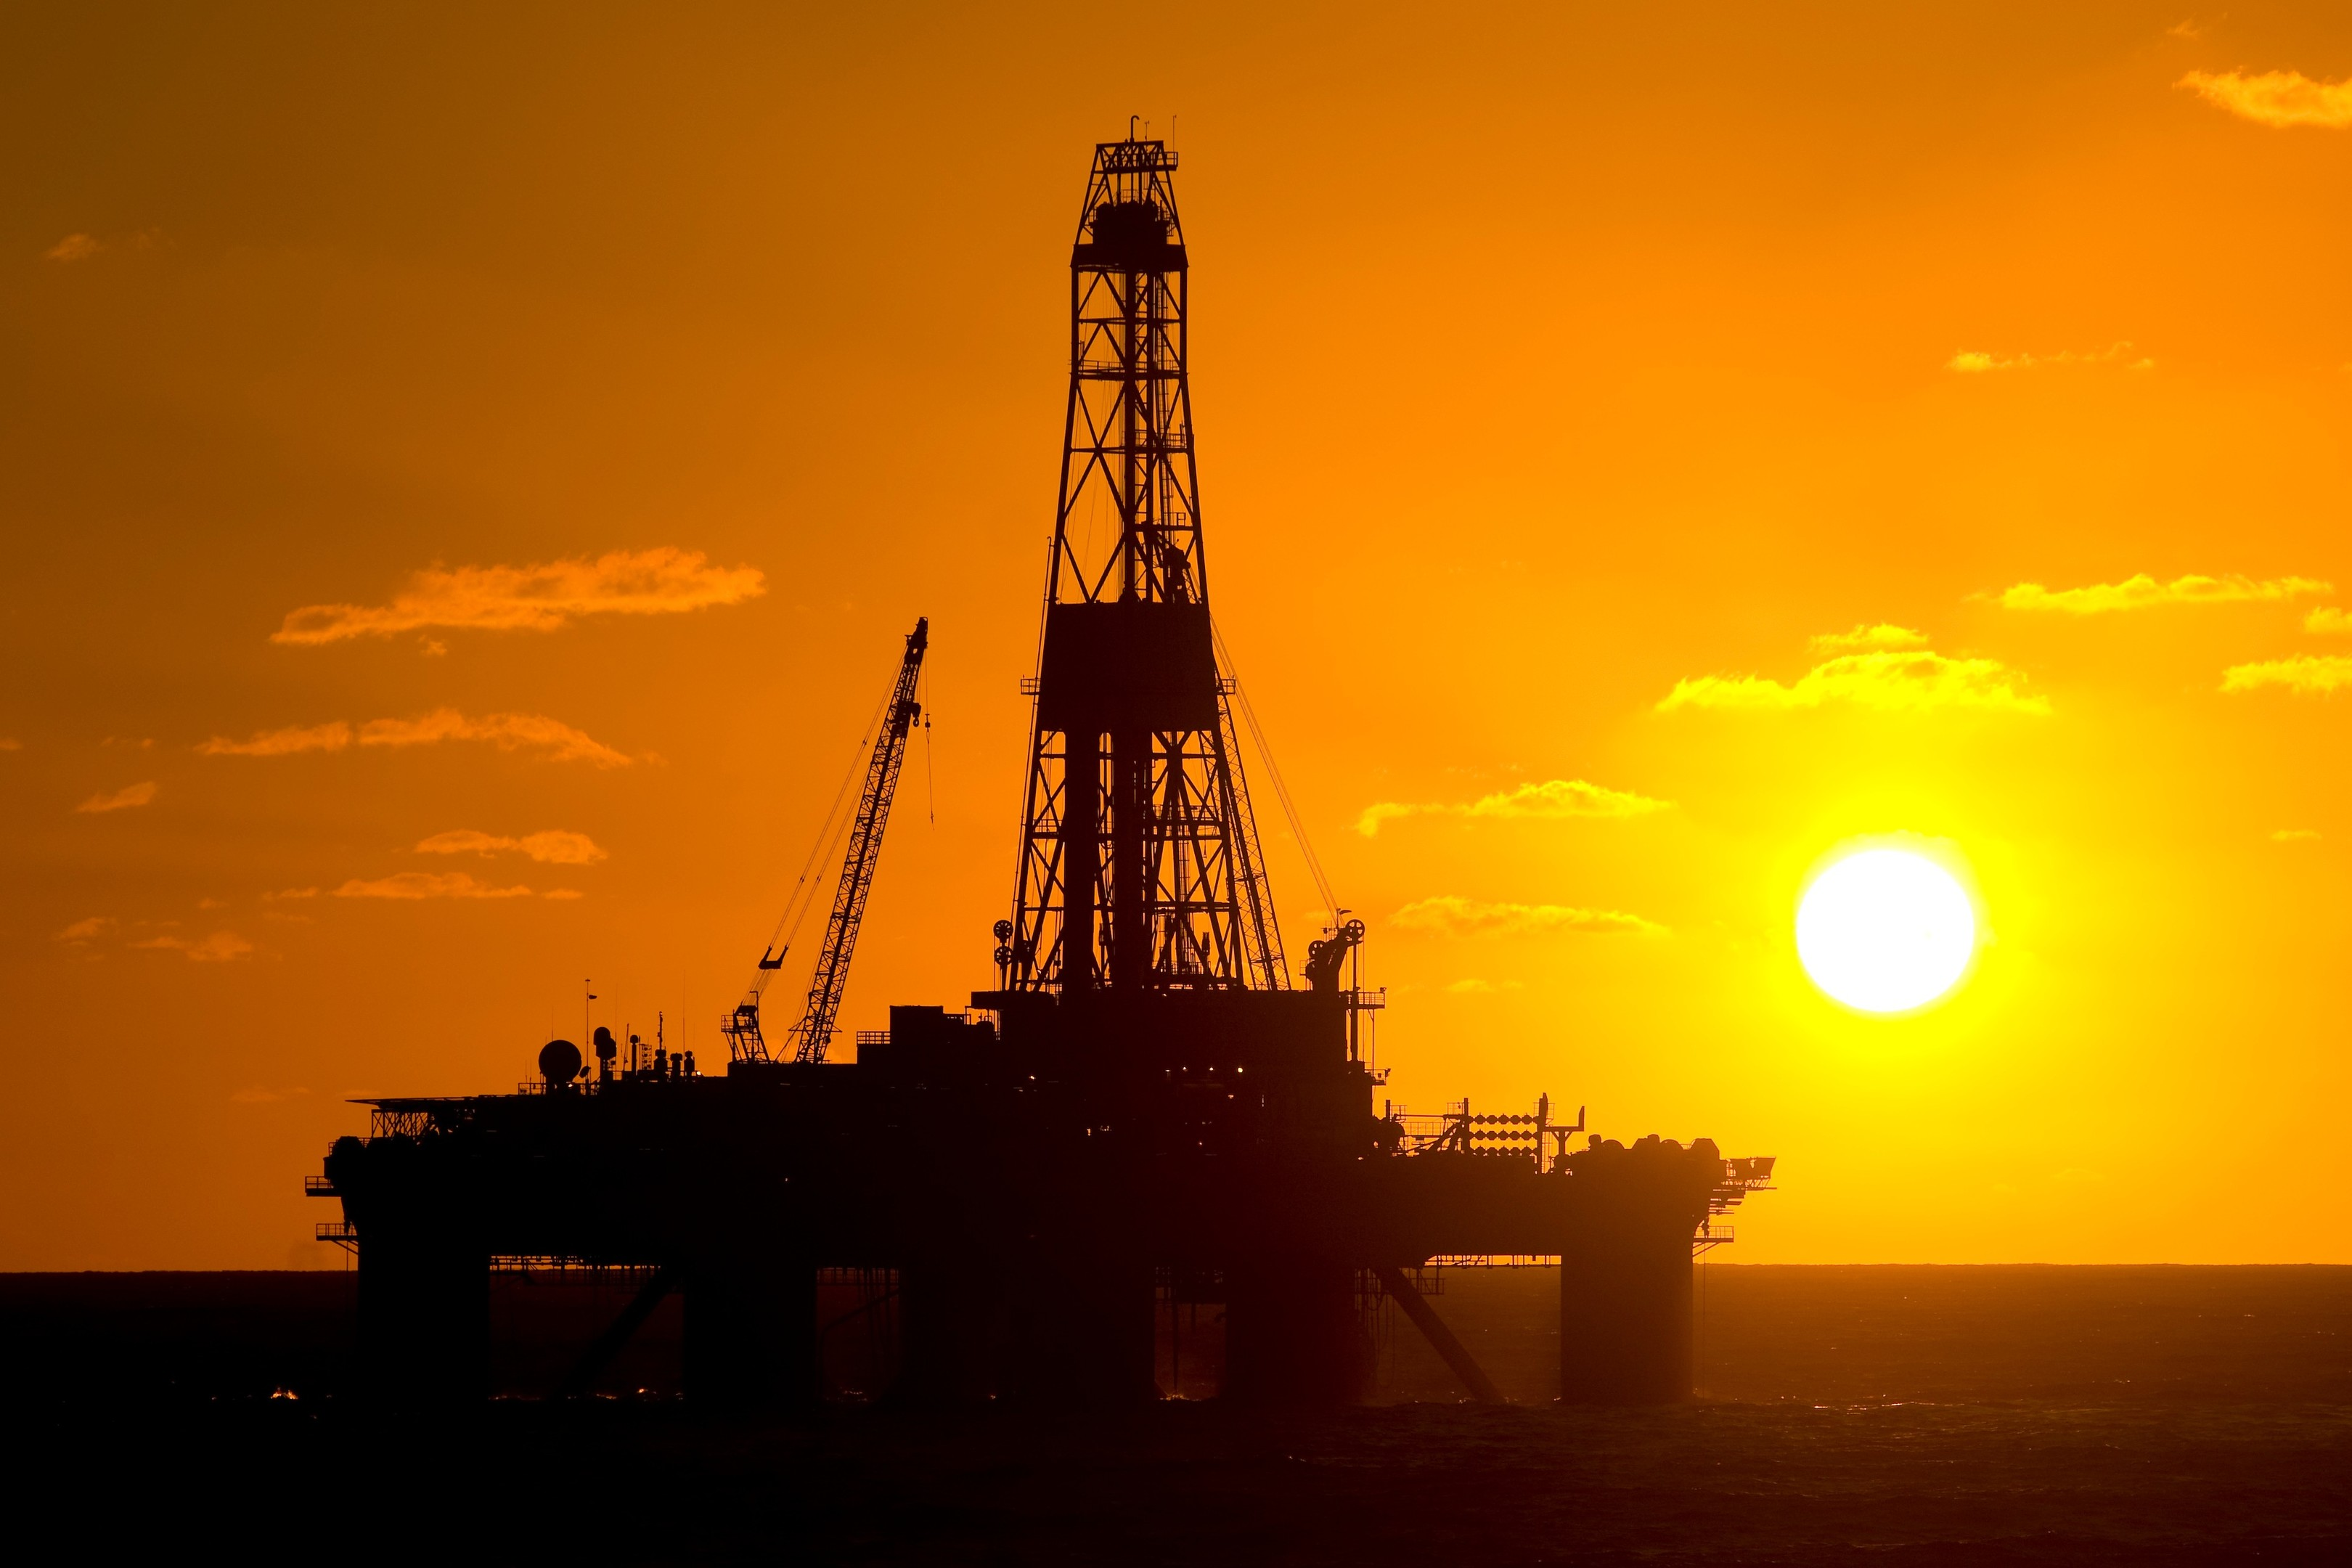 An oil rig at sunset